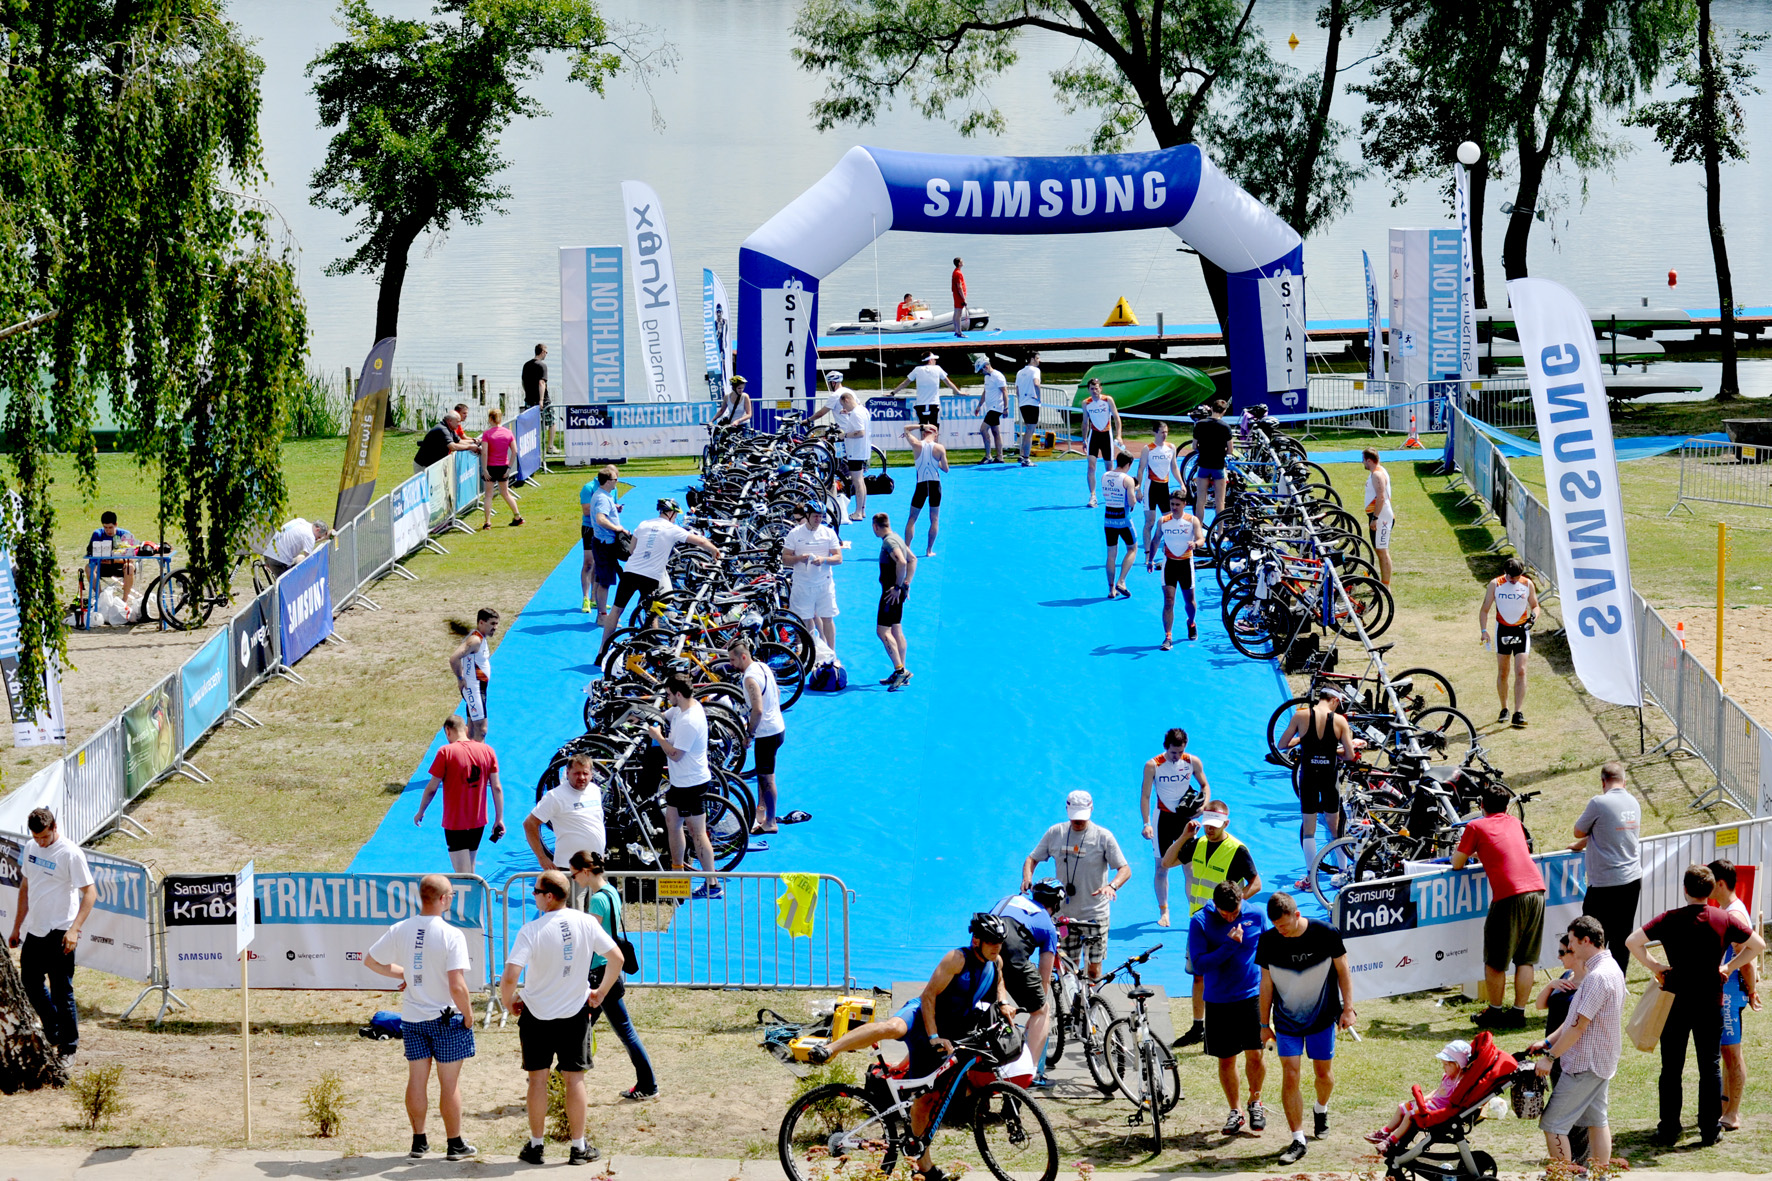 Samsung Knox Triathlon IT 2014